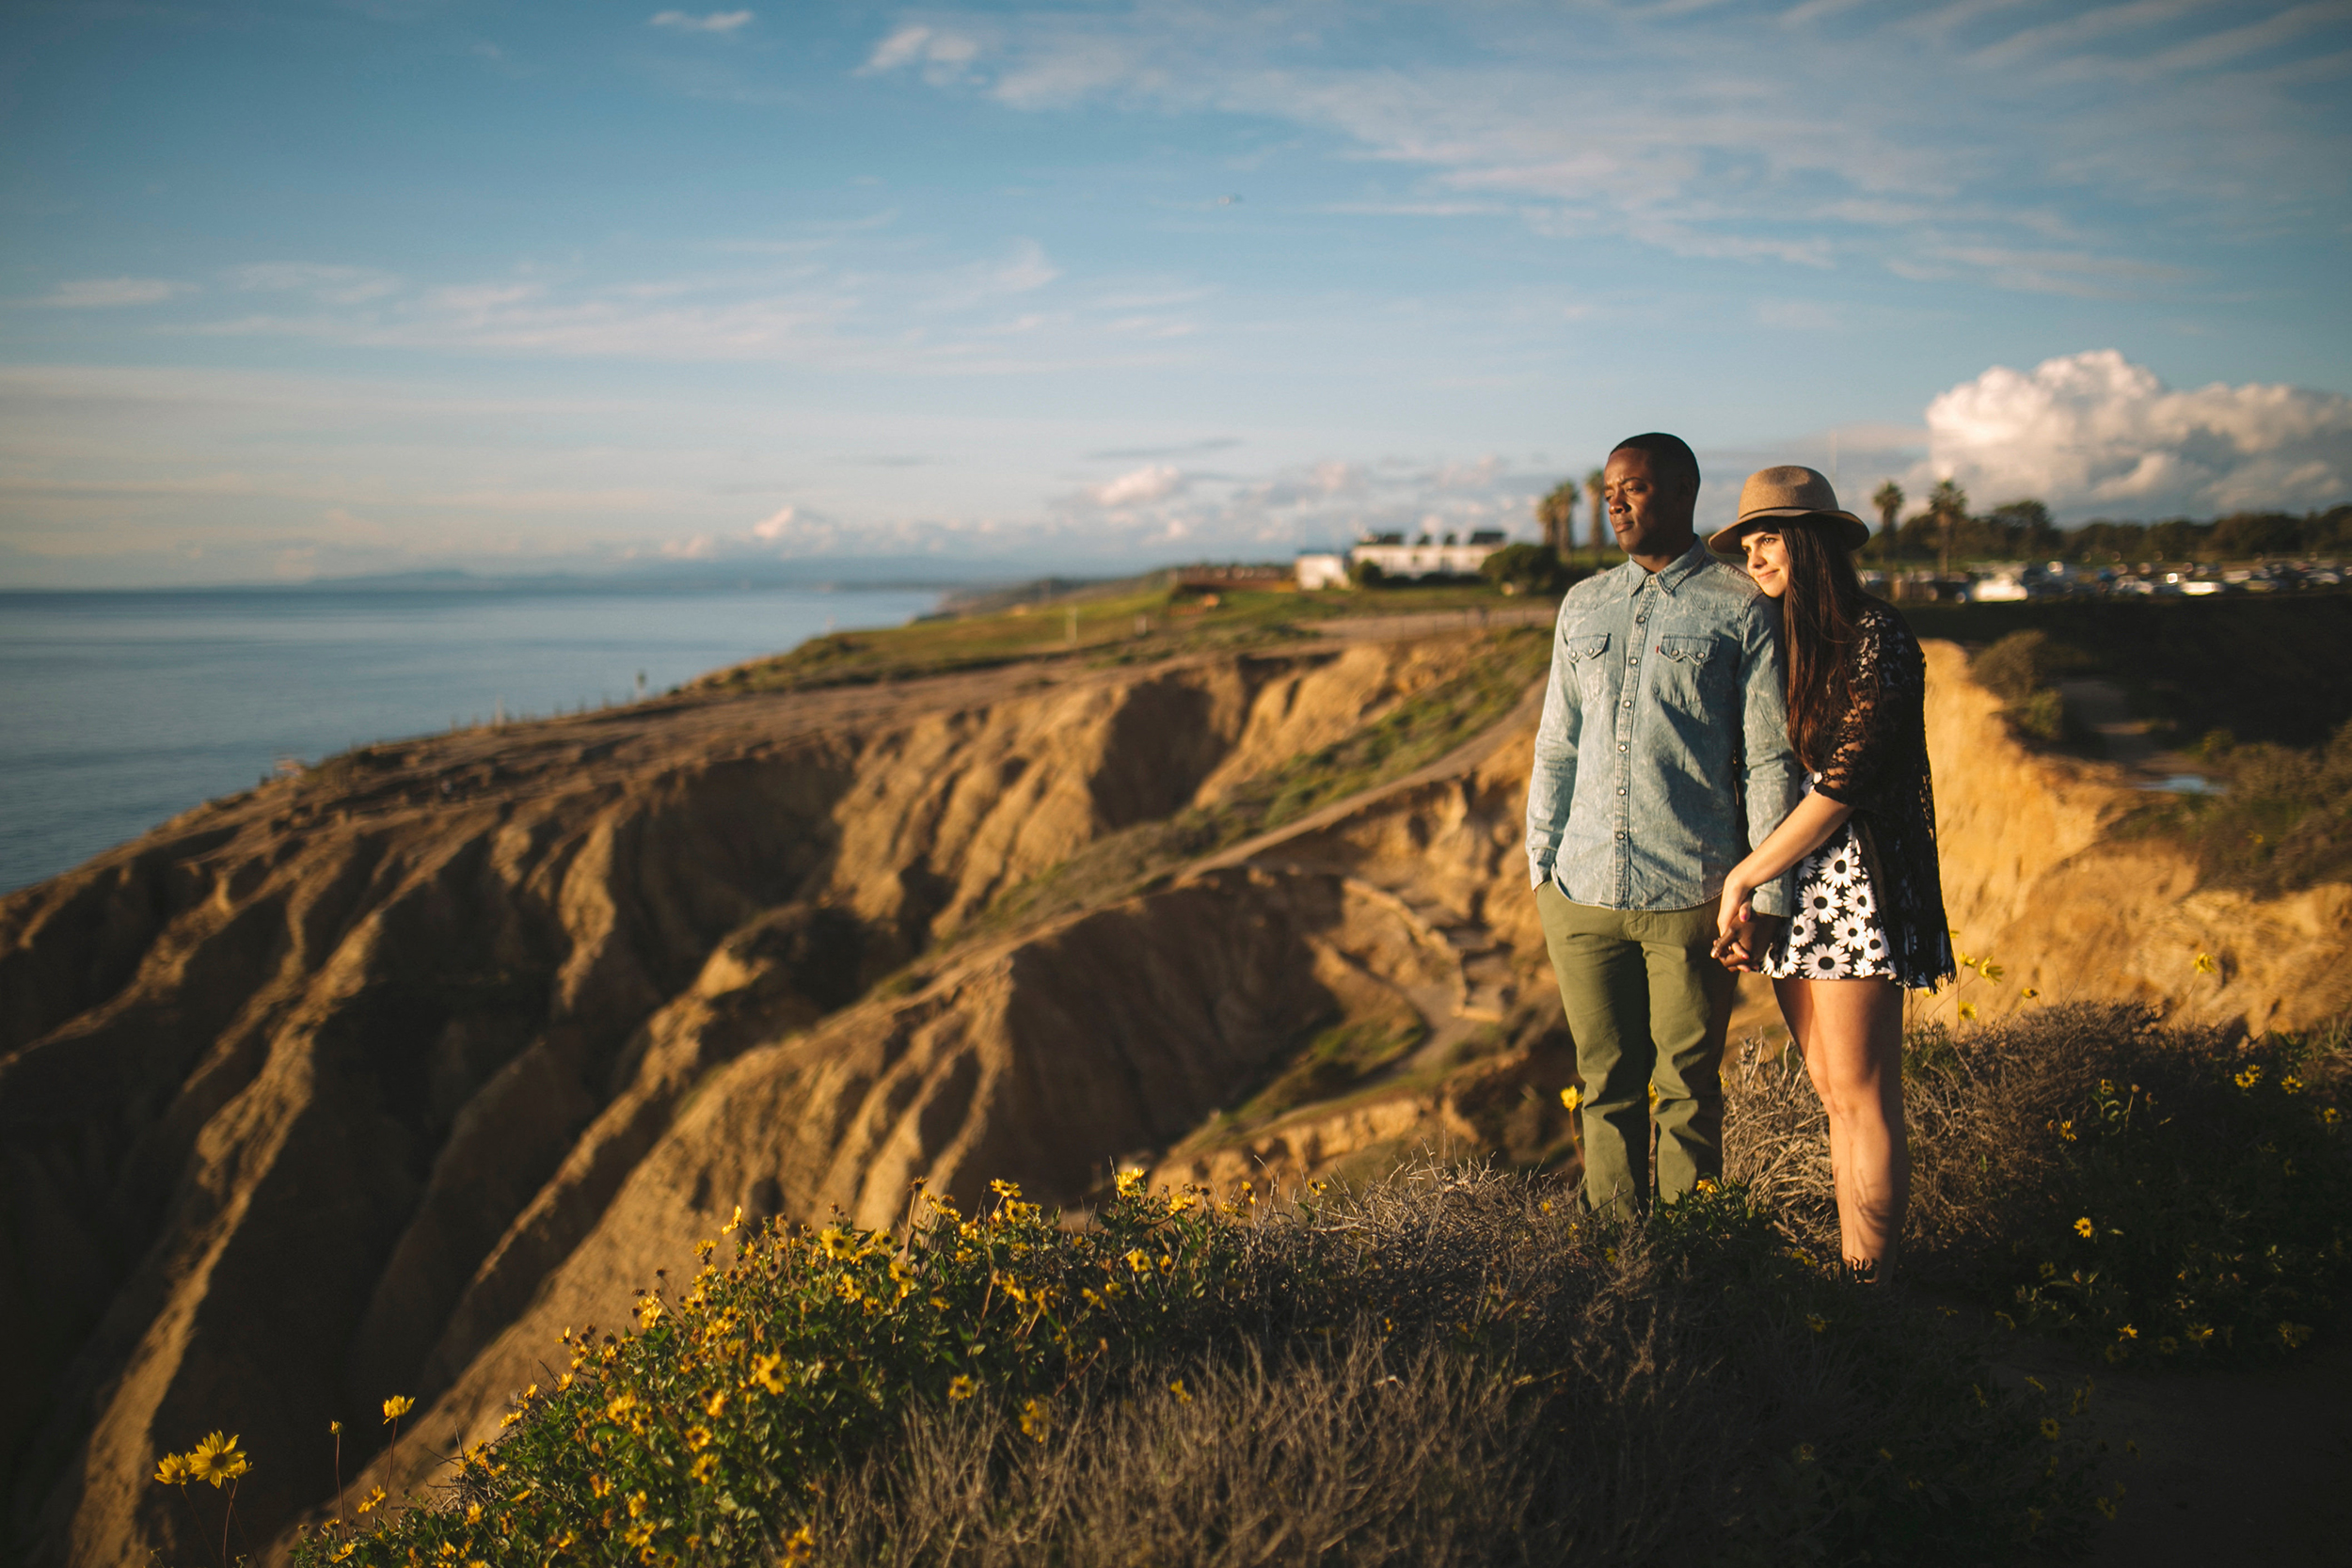 Colby-and-Jess-Adventure-Engagement-Photography-Torrey-Pines-La-Jolla-California119.jpg